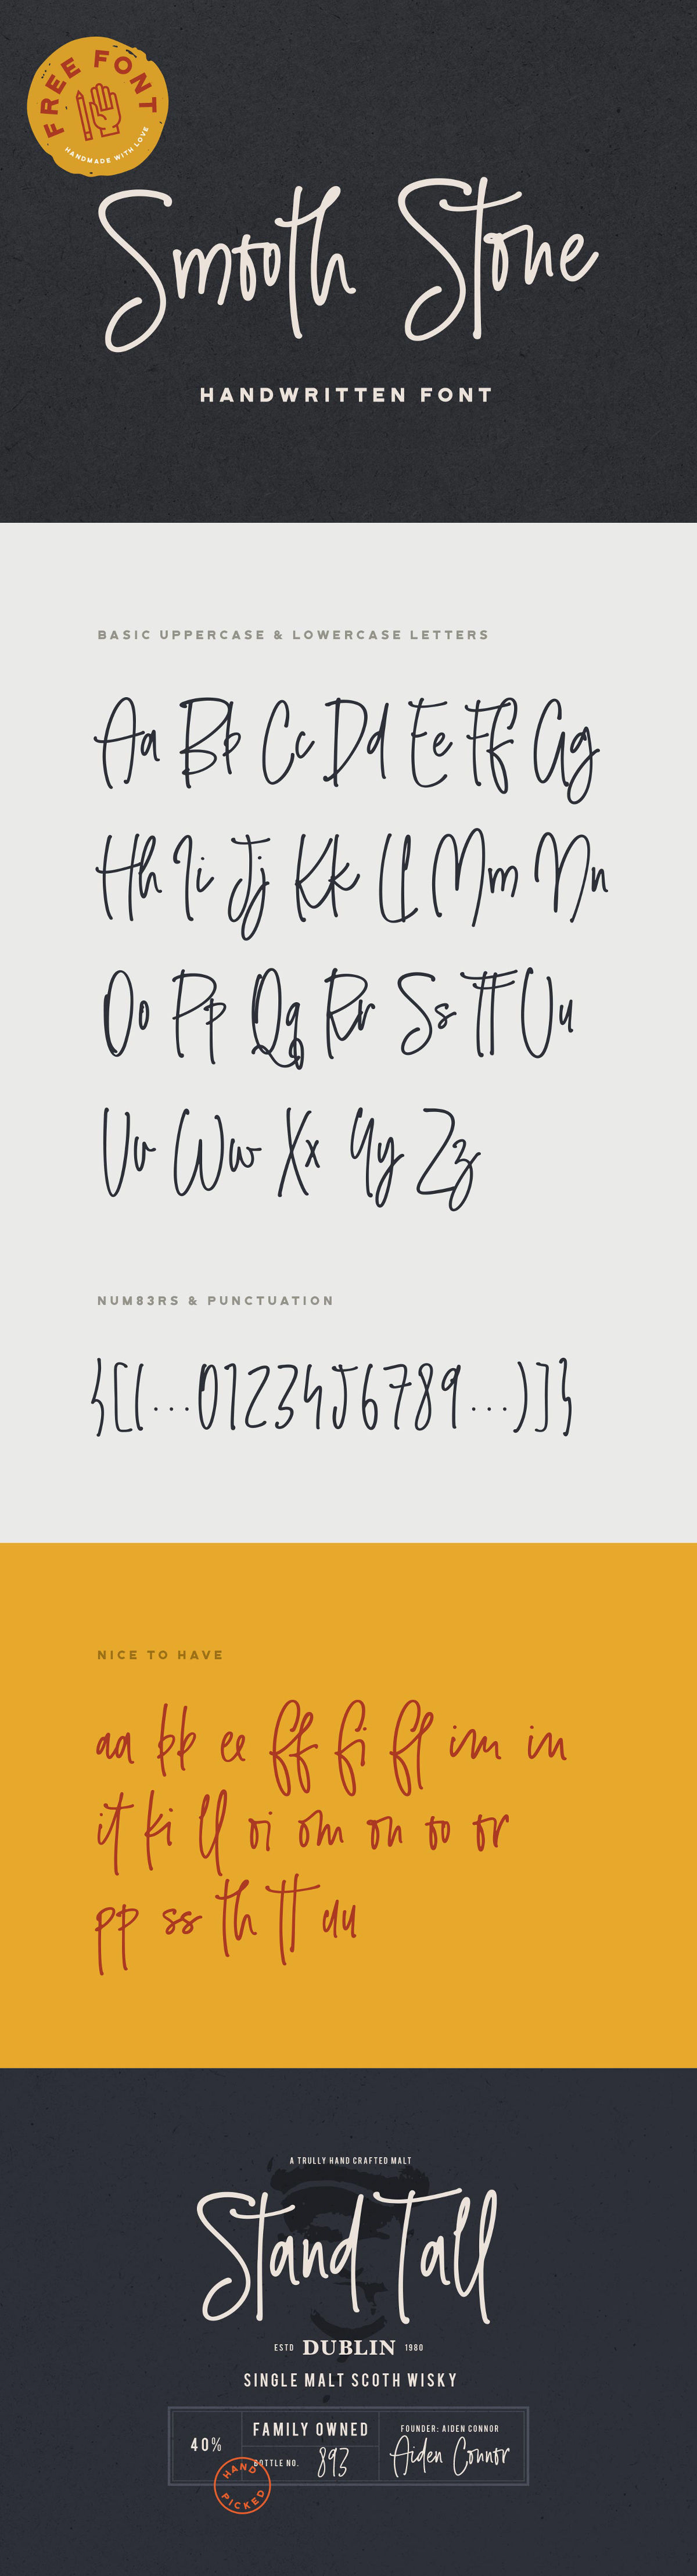 Smooth Stone Free Handwritten Font